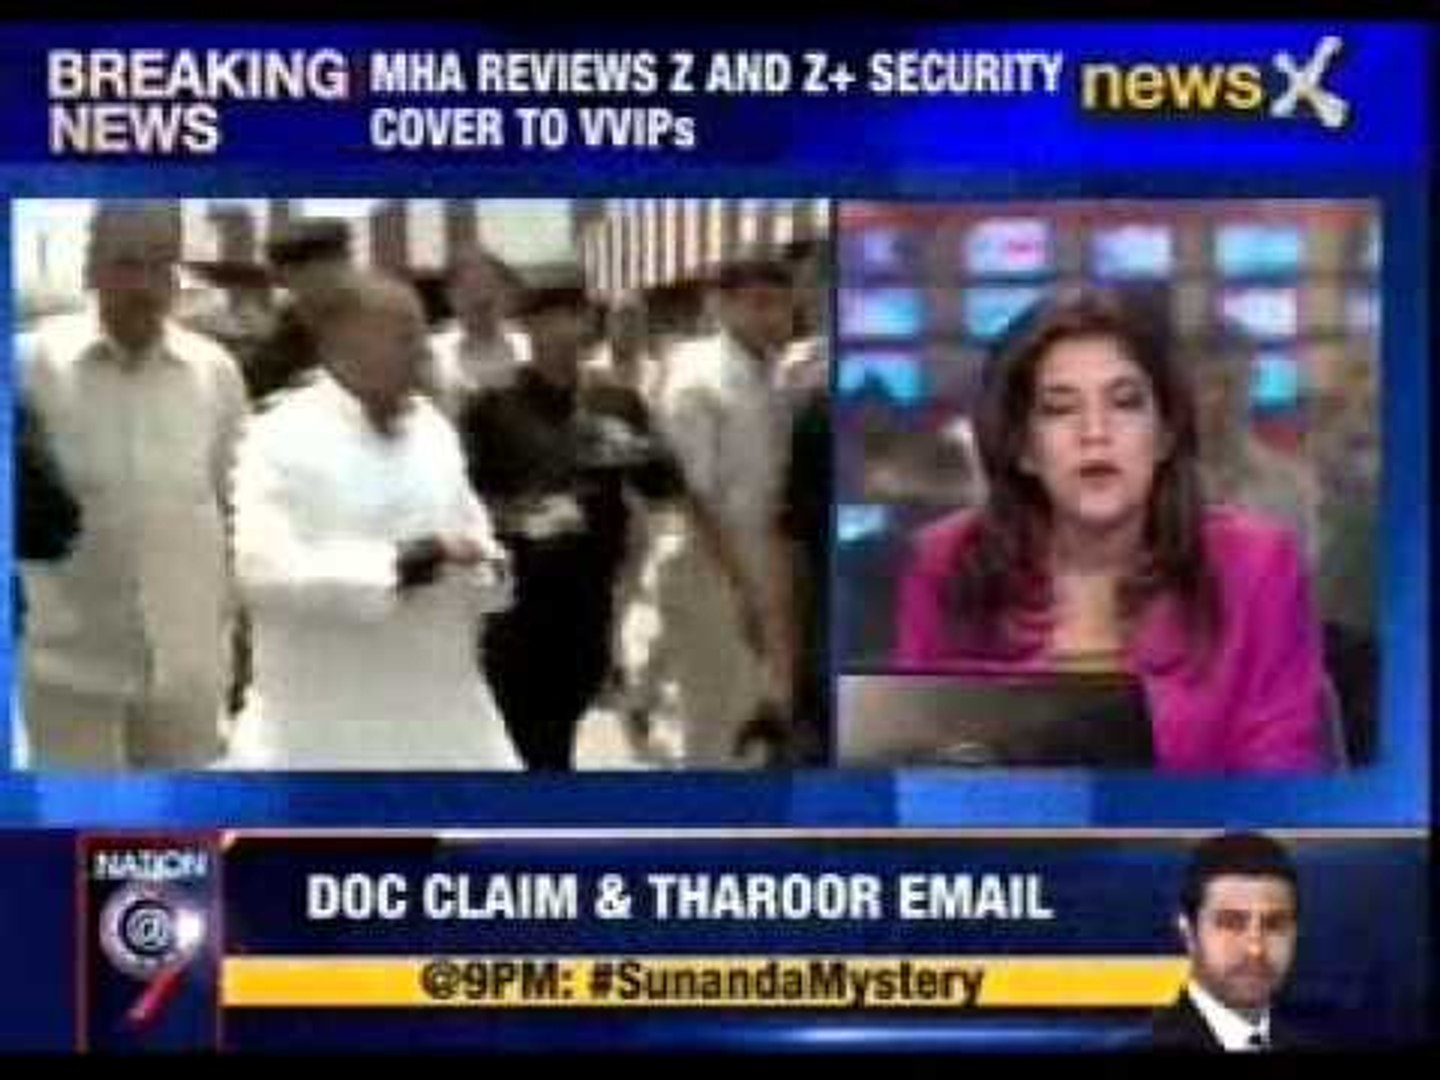 MHA reviews Z and Z+ security cover to VVIPs